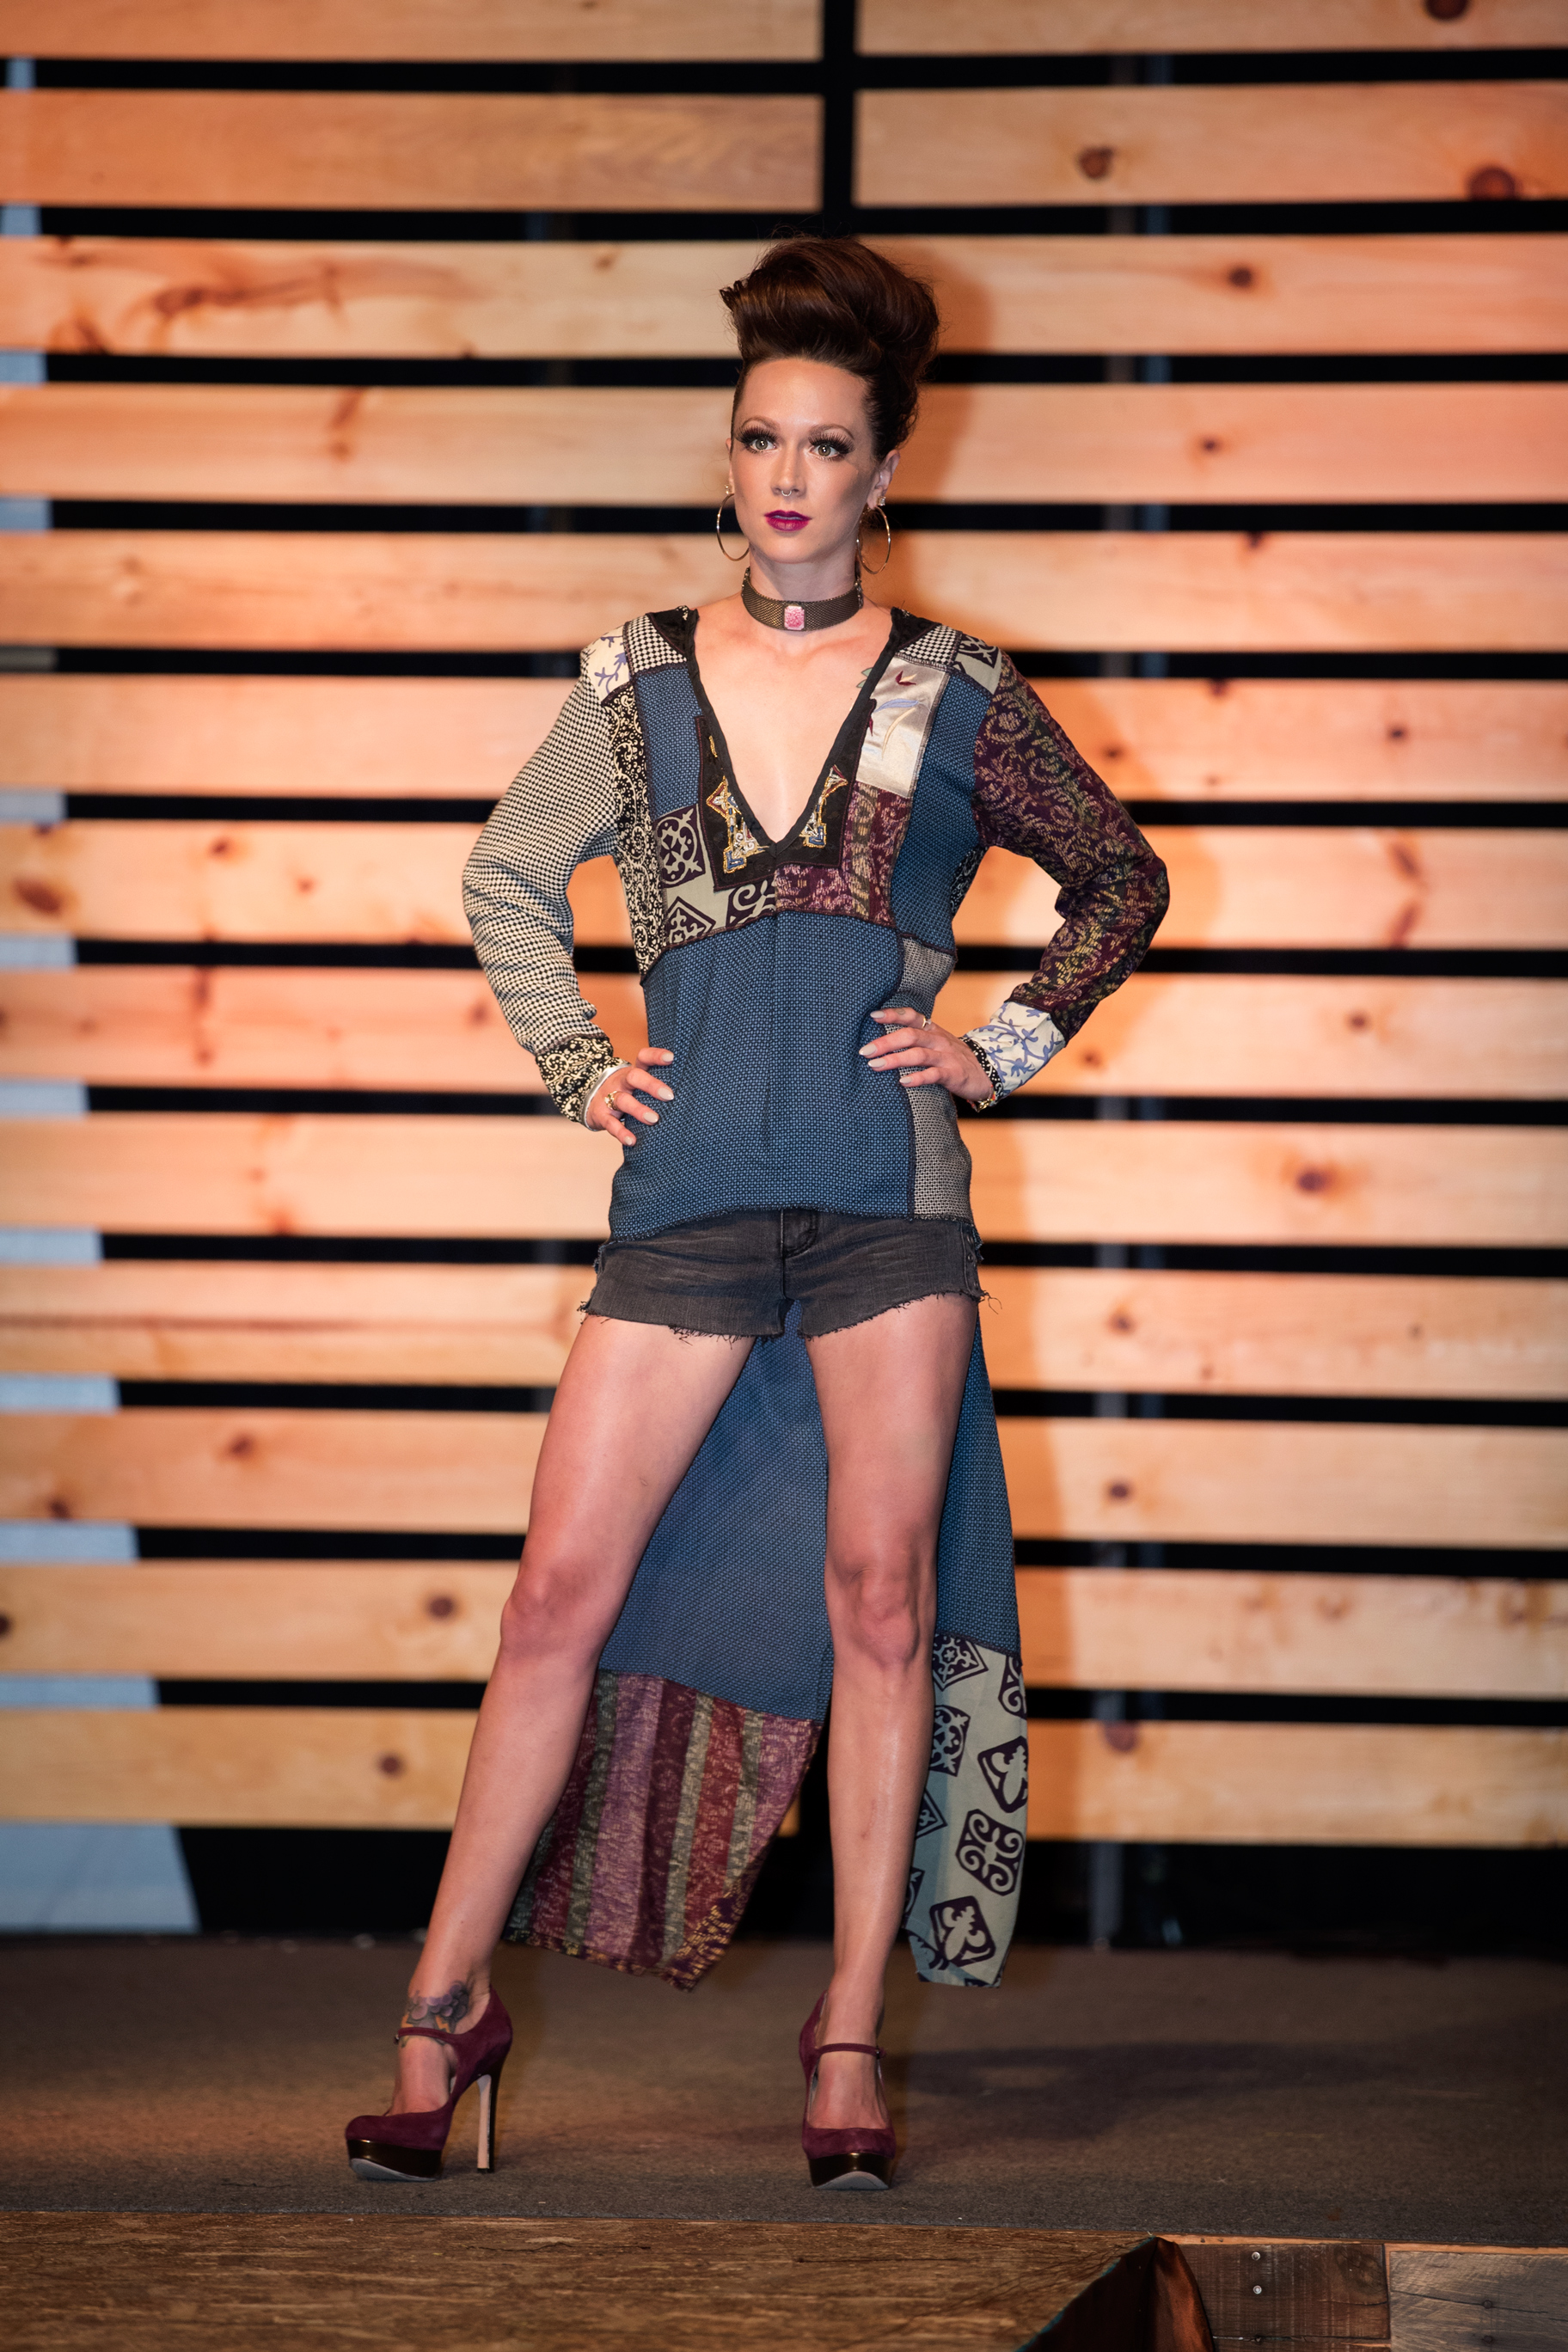 Mission Wear Upcycled Patchwork Fashion Show - 009.jpg